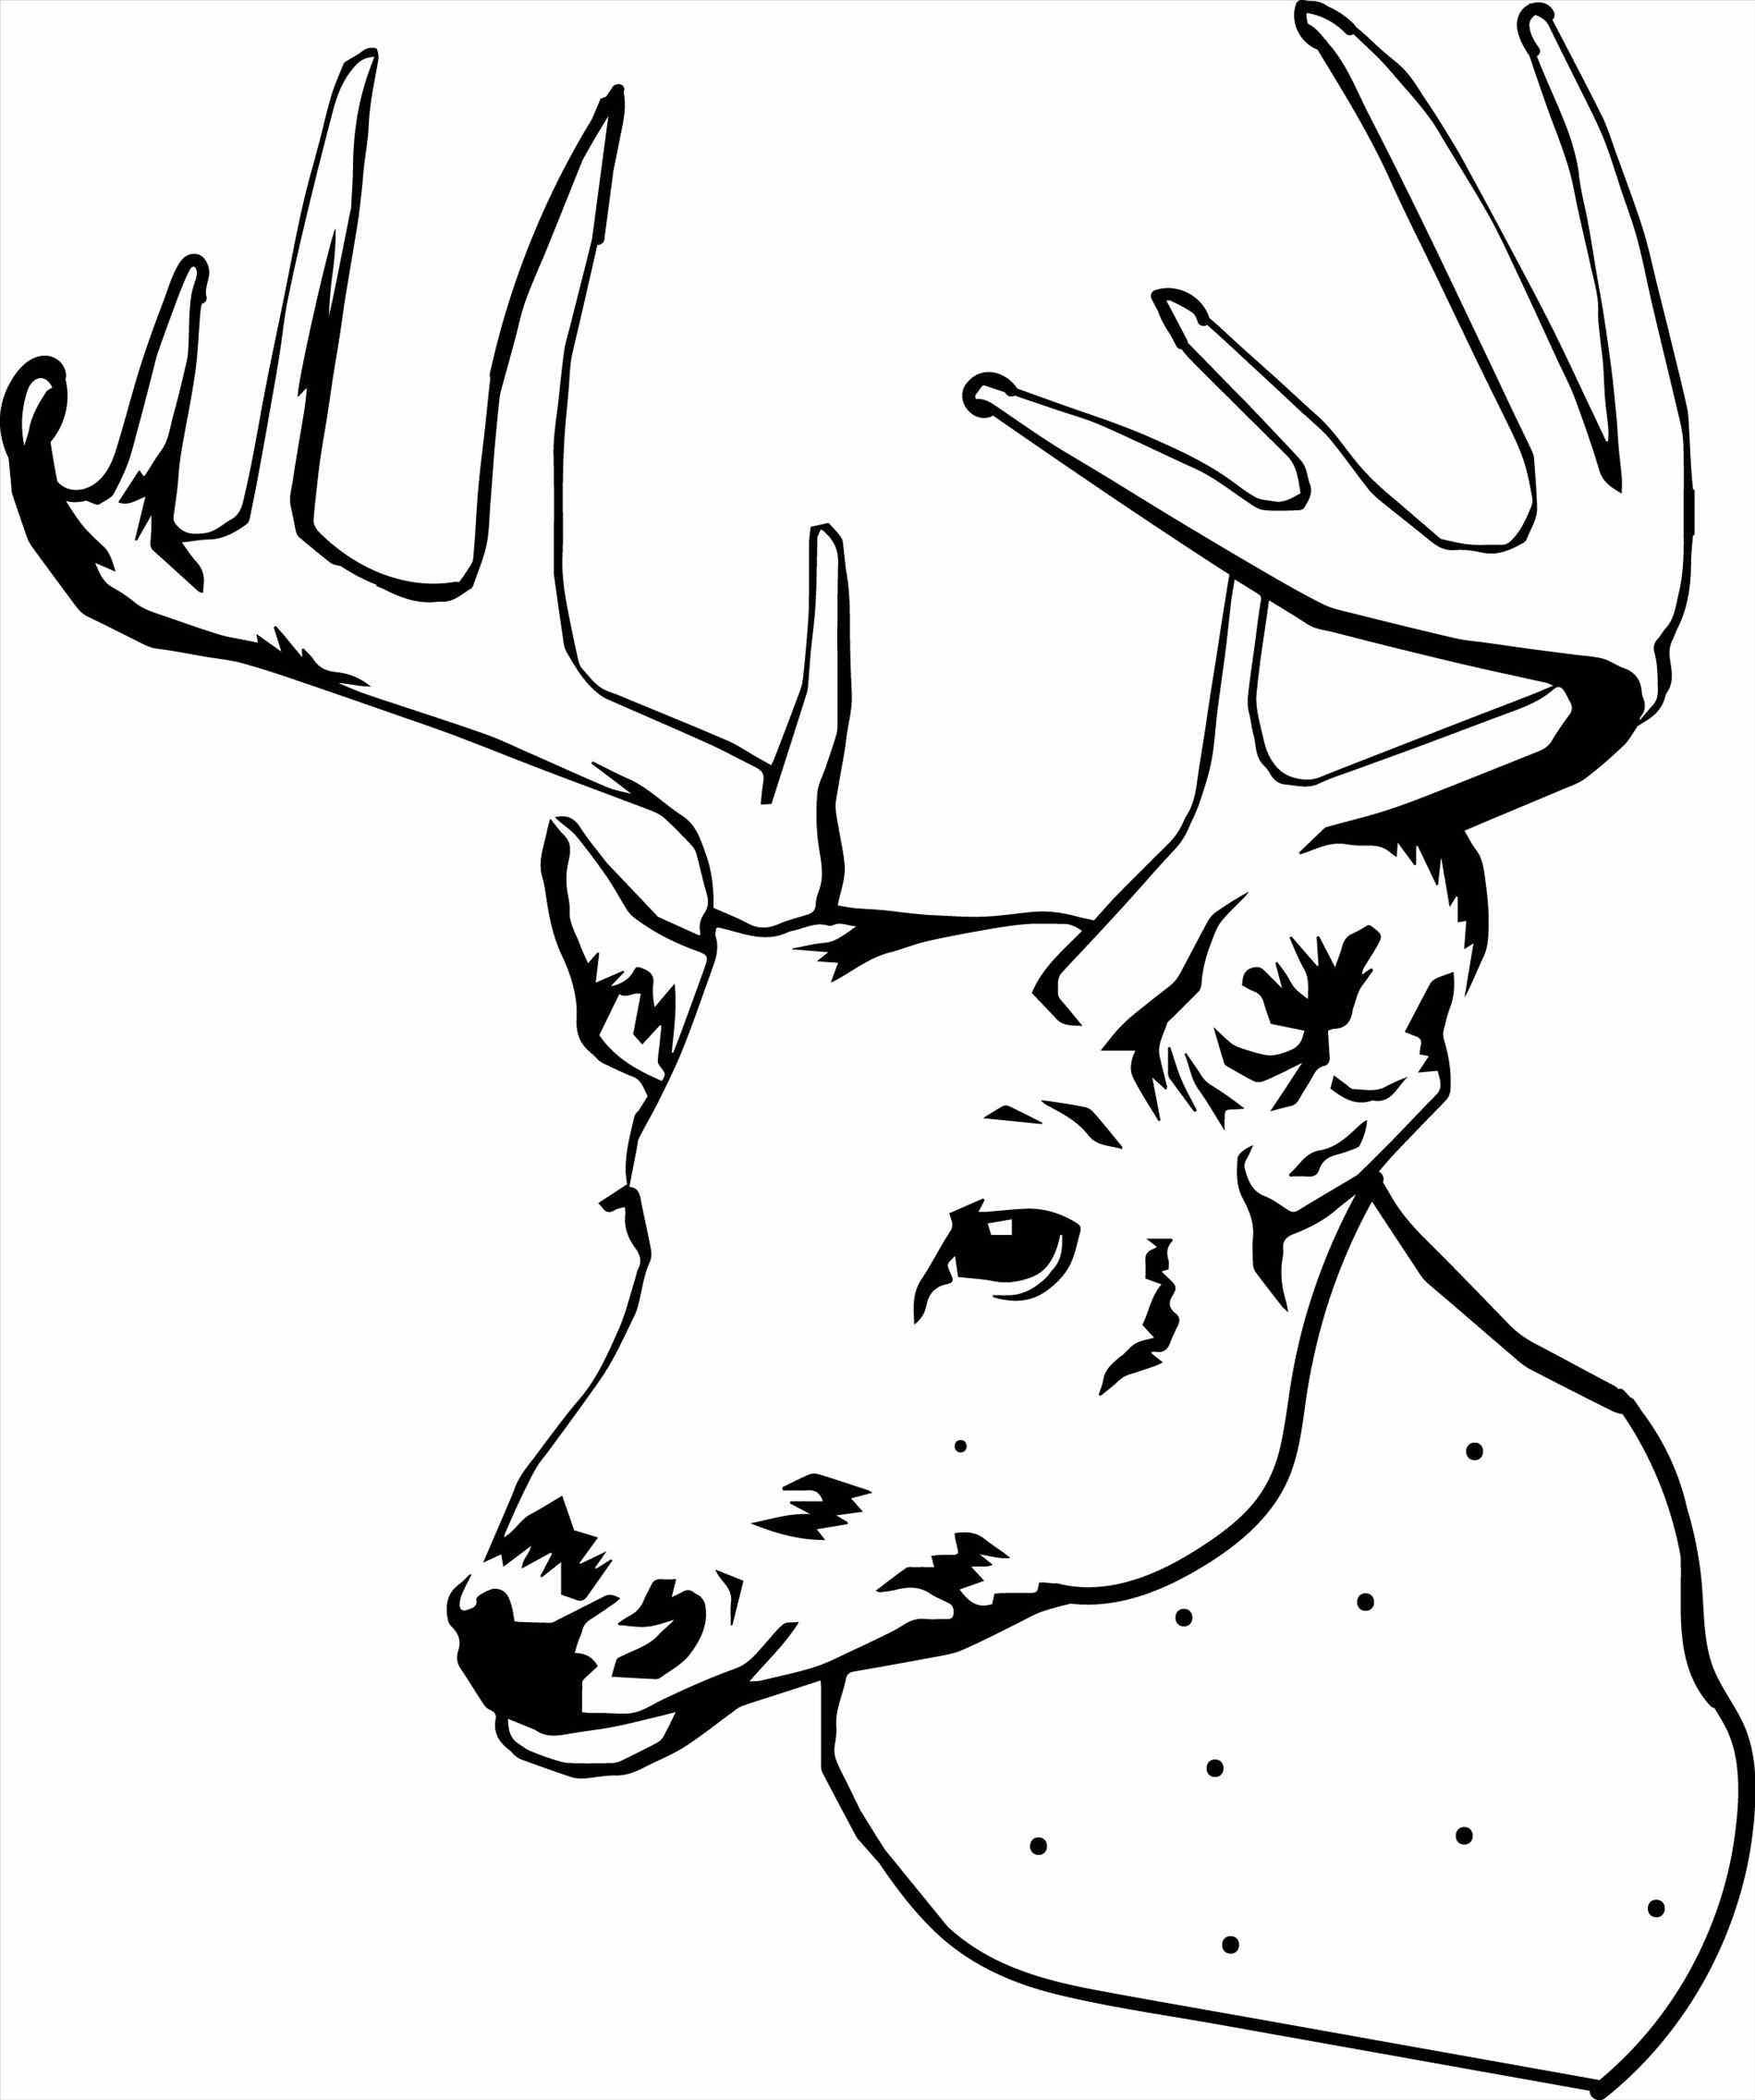 pictures of deers to color free printable deer coloring pages for kids pictures color deers to of